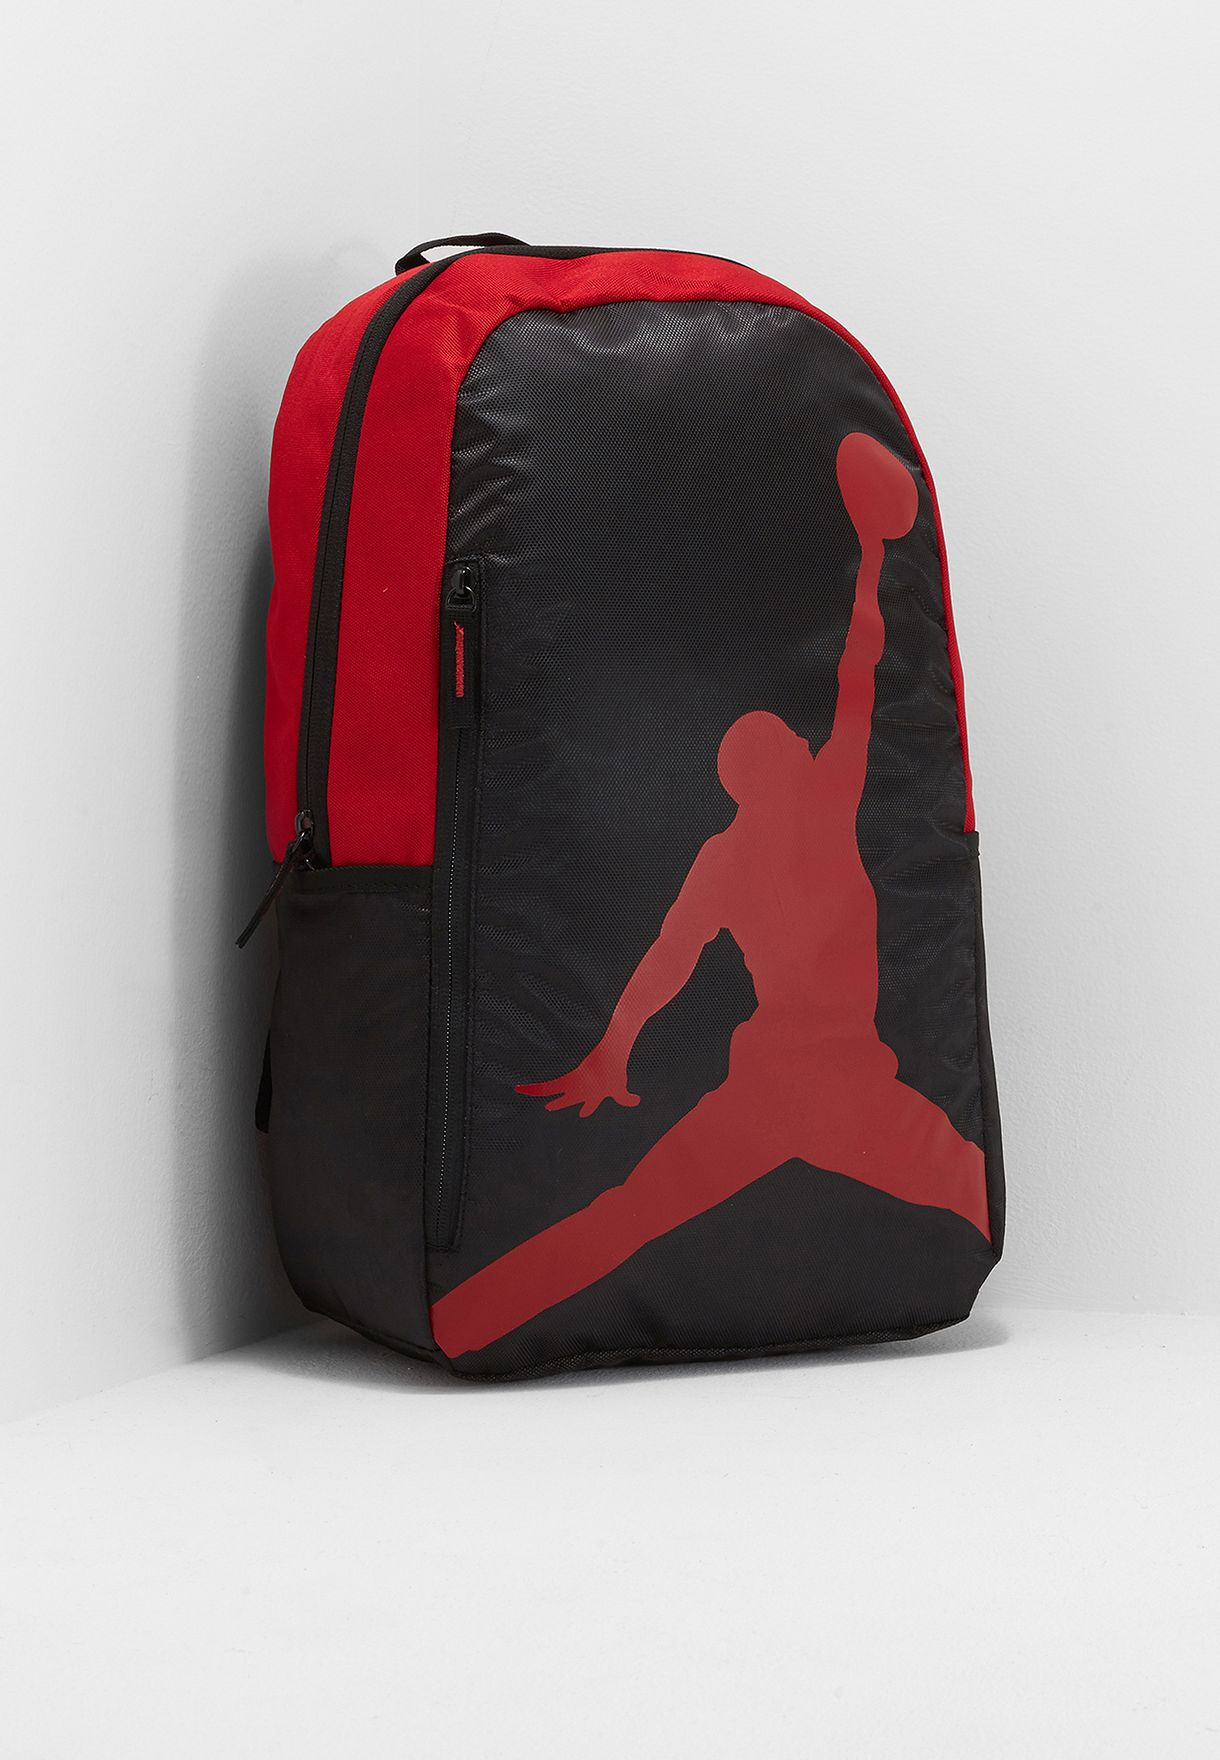 6aae67344b5 Shop Nike red Jordan Jumpman Backpack 9A1911-KR5 for Kids in UAE ...